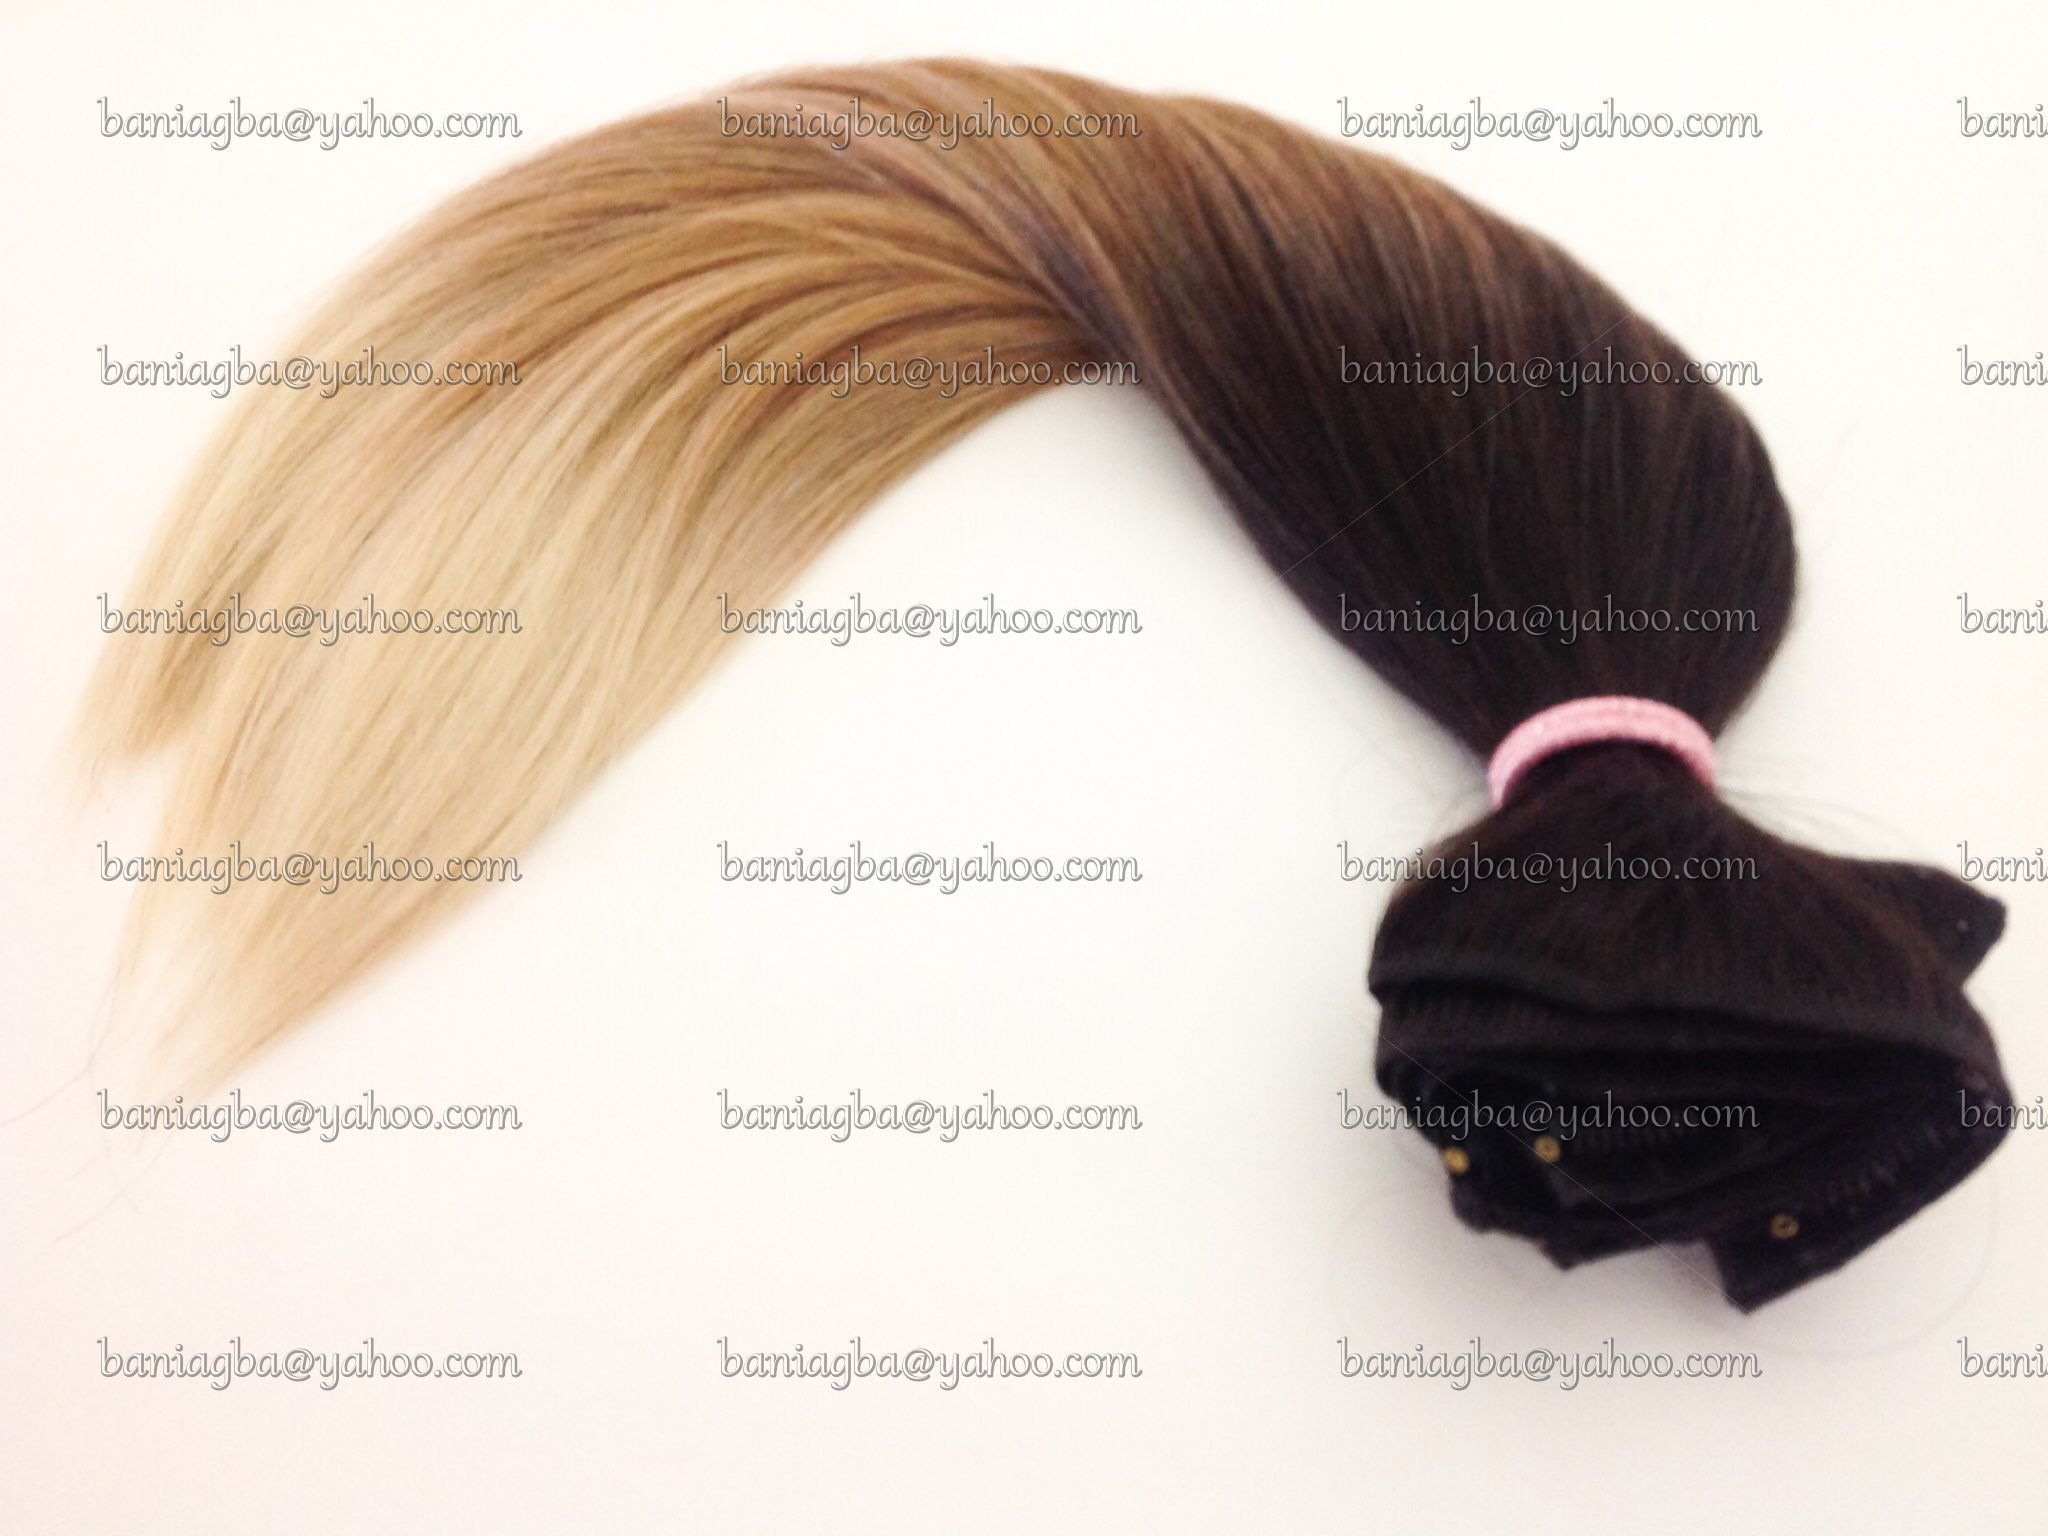 8 Pcs Ombre Trio Extensions 18 Clip In Hair Extensions Human